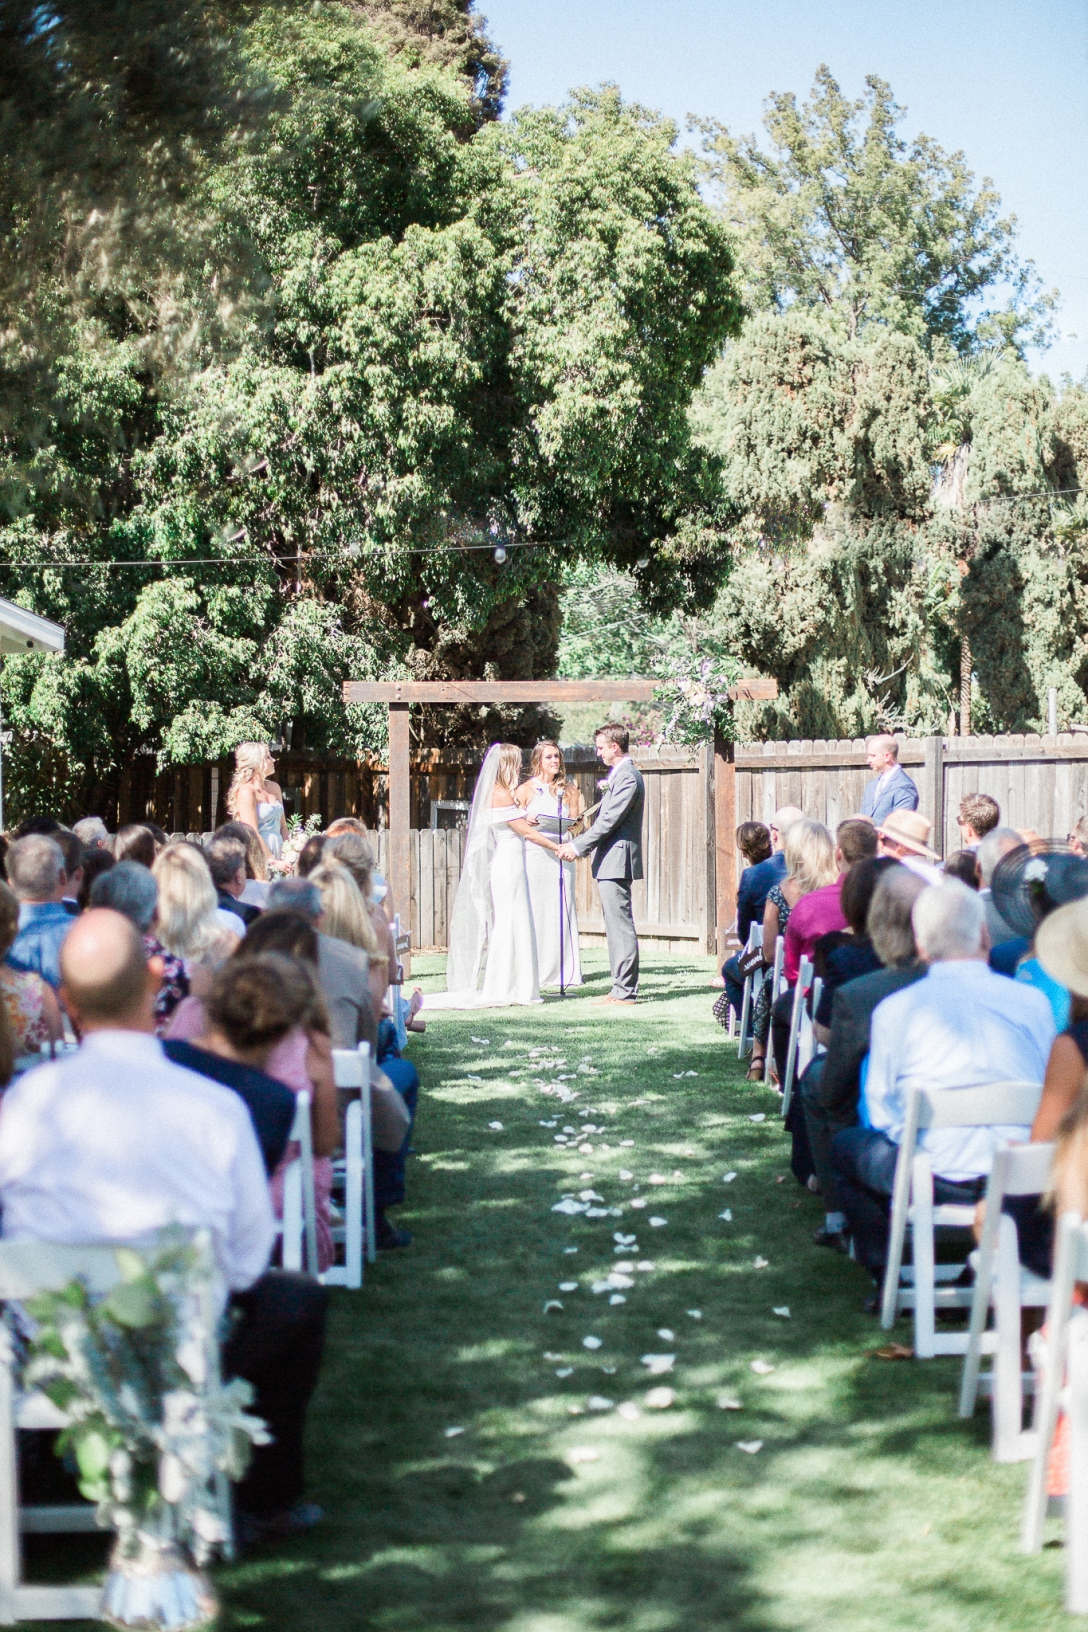 Katy-Steve-Wedding-Tustin-California-45